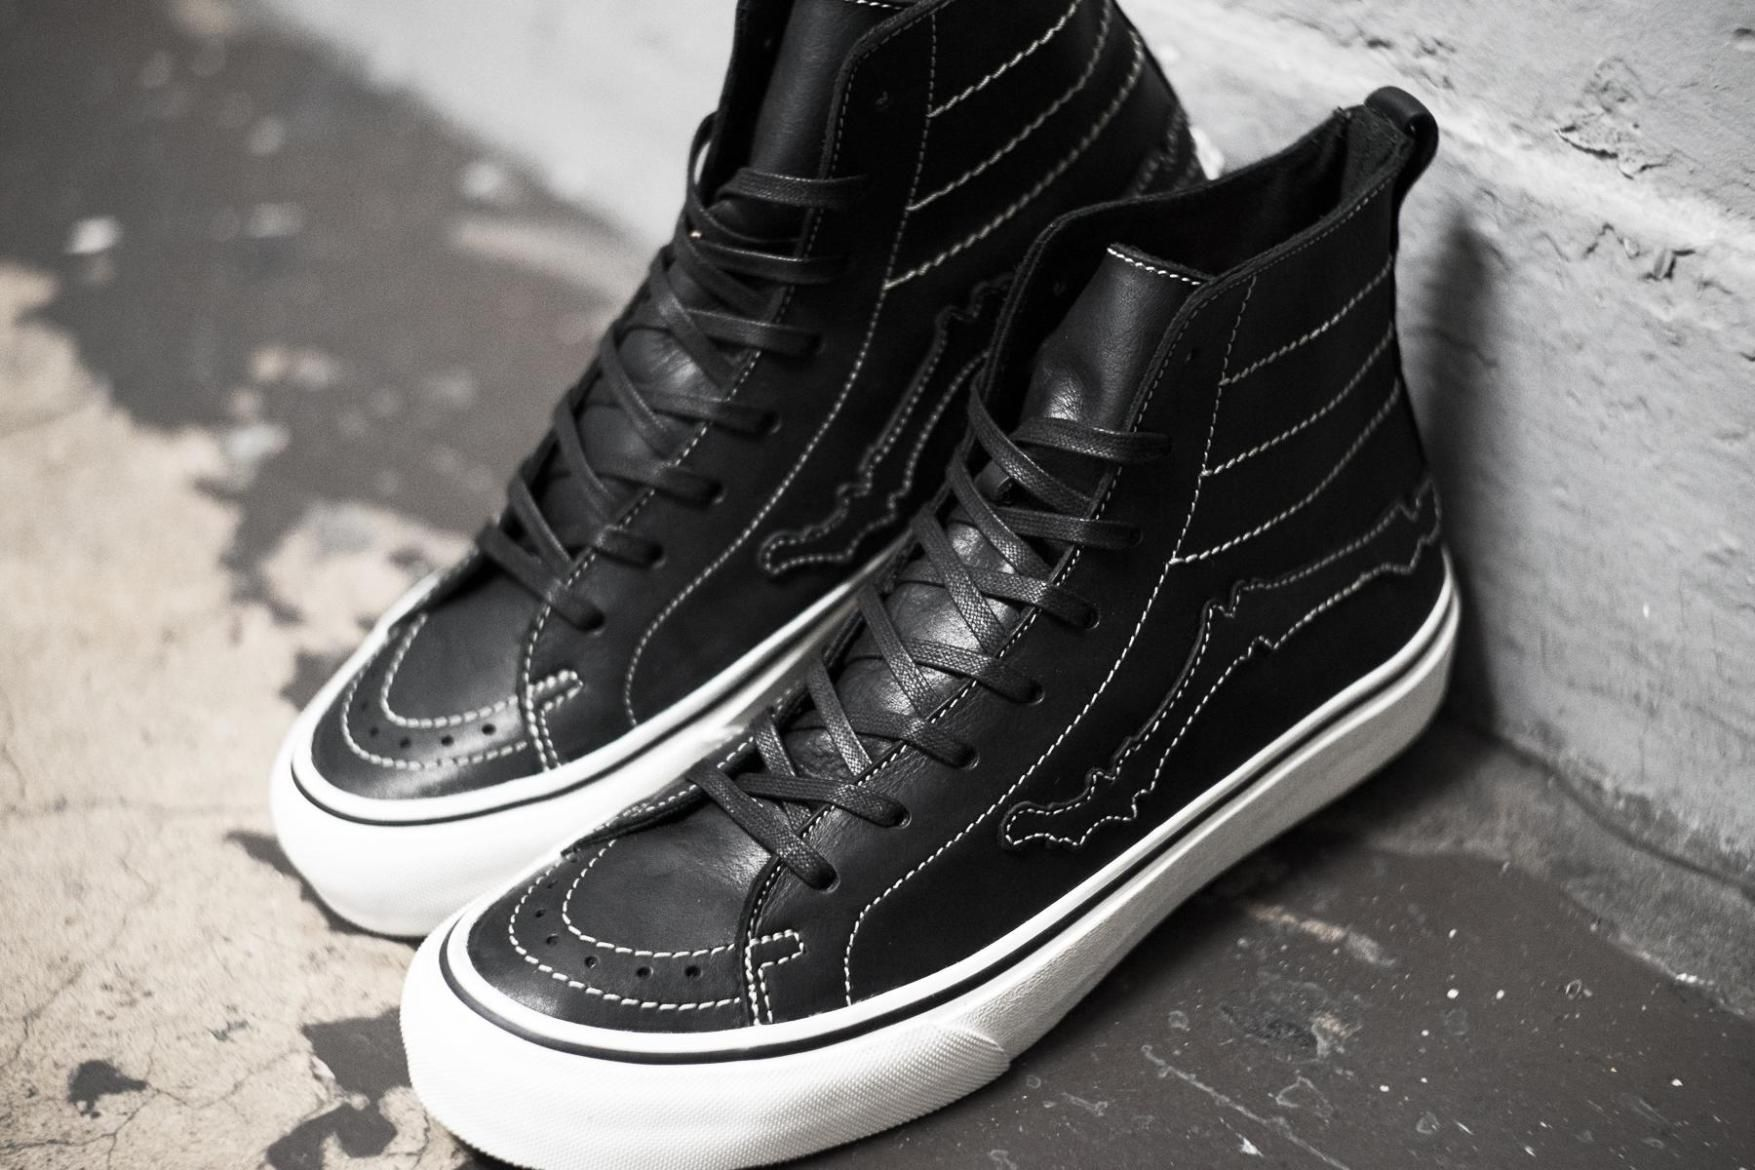 8c154ba302 Blends x Vault by Vans Sk8 Hi Decon LX Bones black white stitching white  midsole leather Jazz Stripe